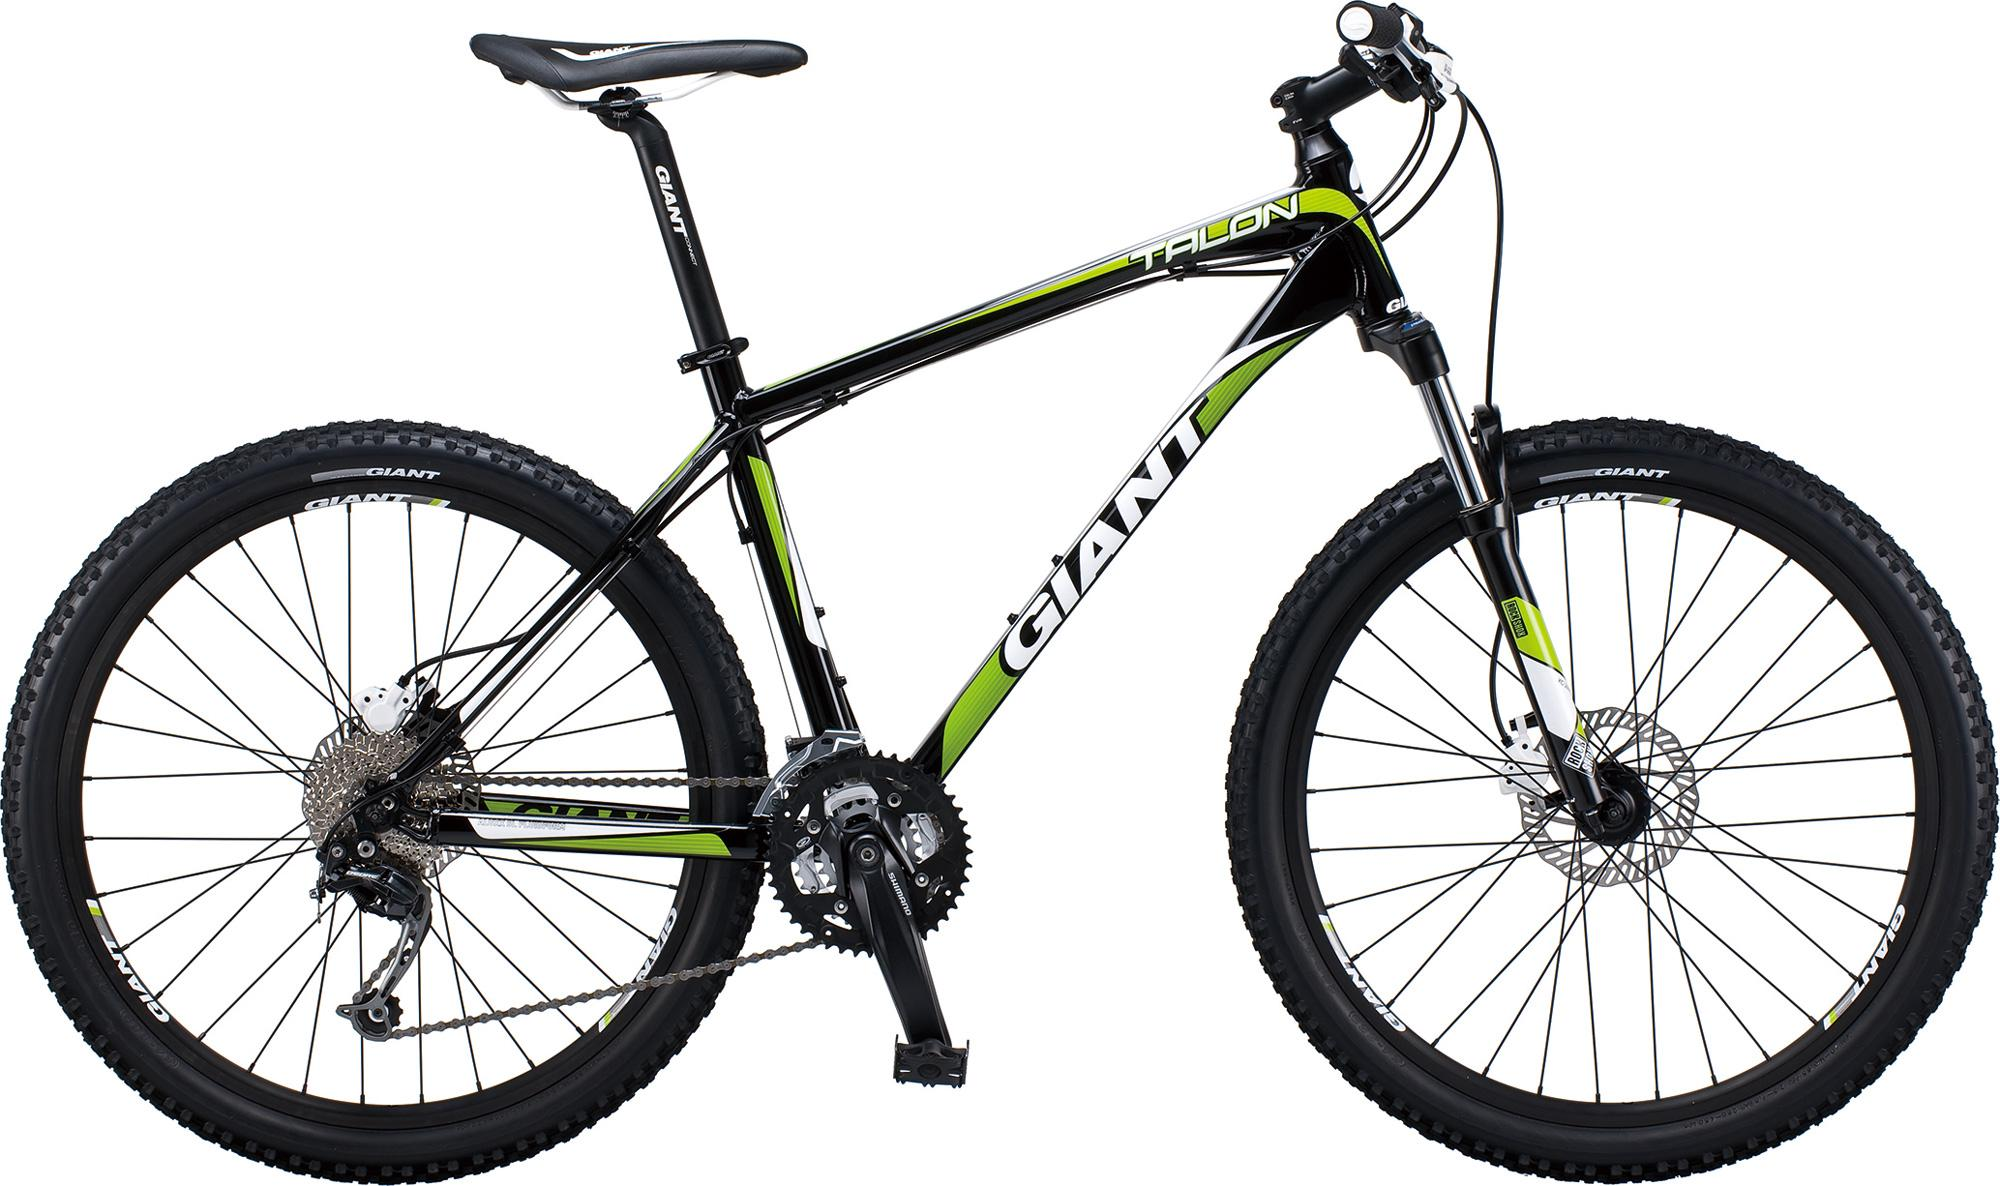 http://www.giant-bicycles.com/_generated/_generated_ru/bikes/models/images/2000/2012/Talon-2-BlkGreen.jpg